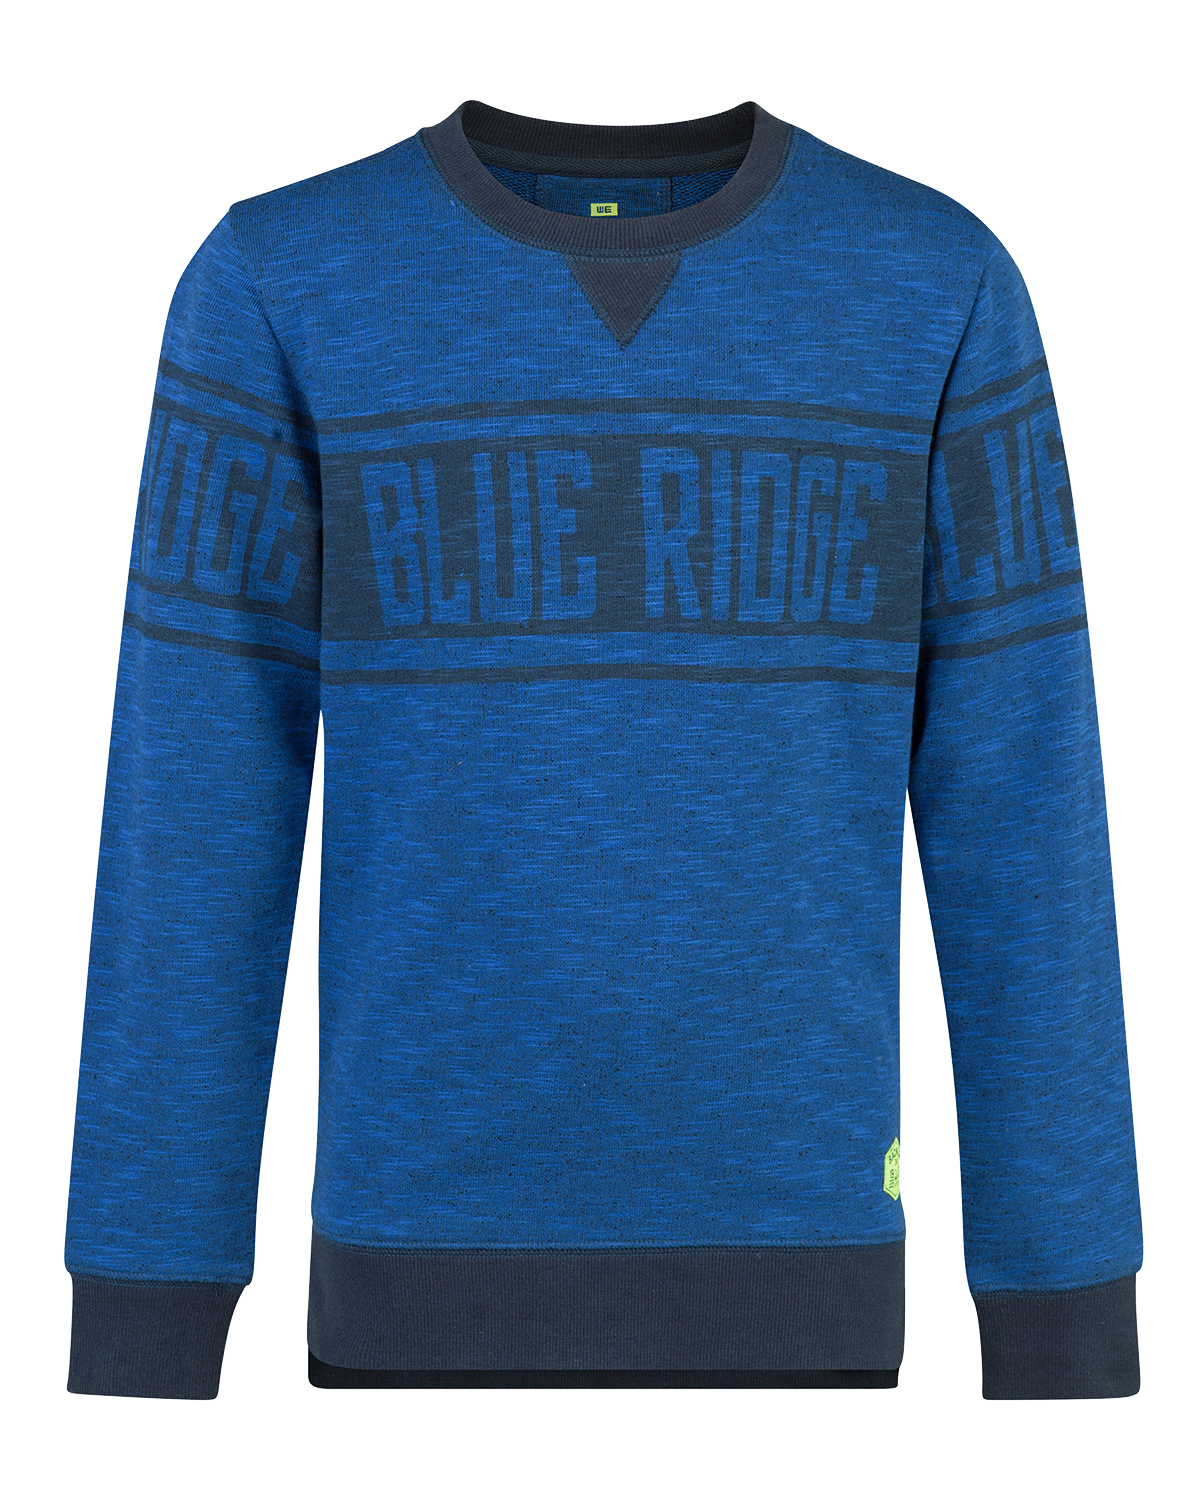 Jongens blue ridge sweater